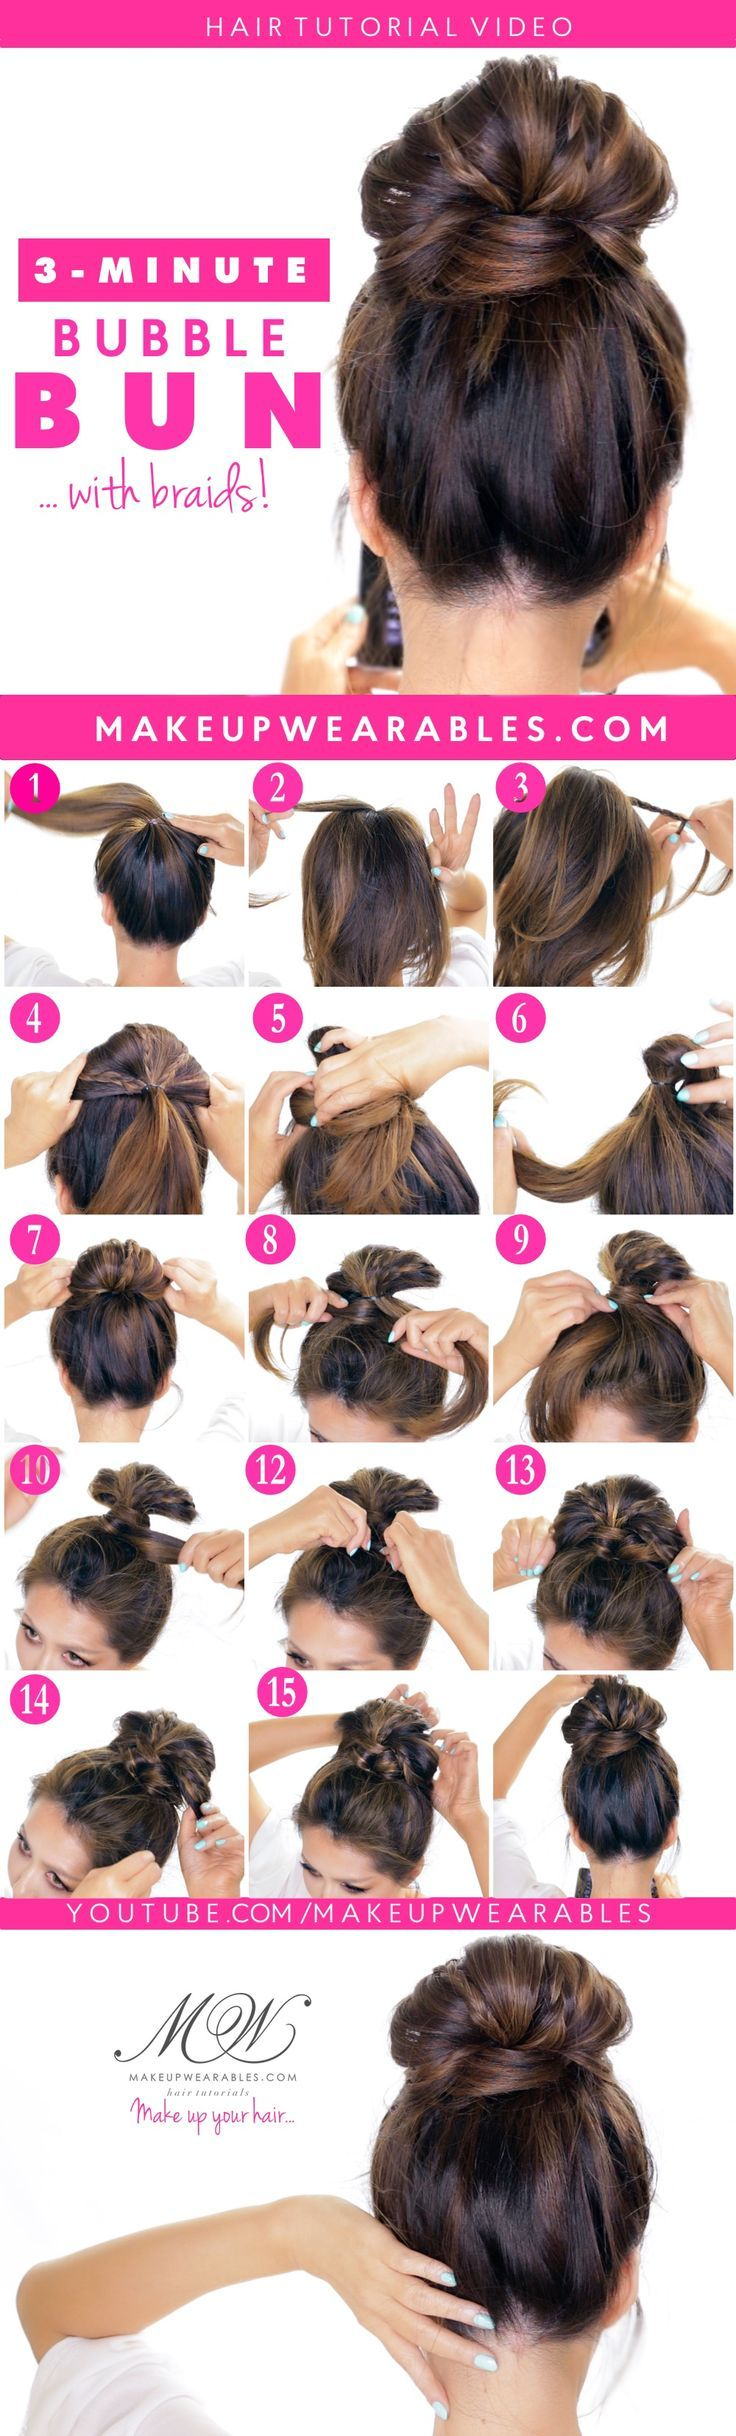 Peachy 1000 Ideas About Lazy Day Hairstyles On Pinterest Full Ponytail Hairstyles For Women Draintrainus